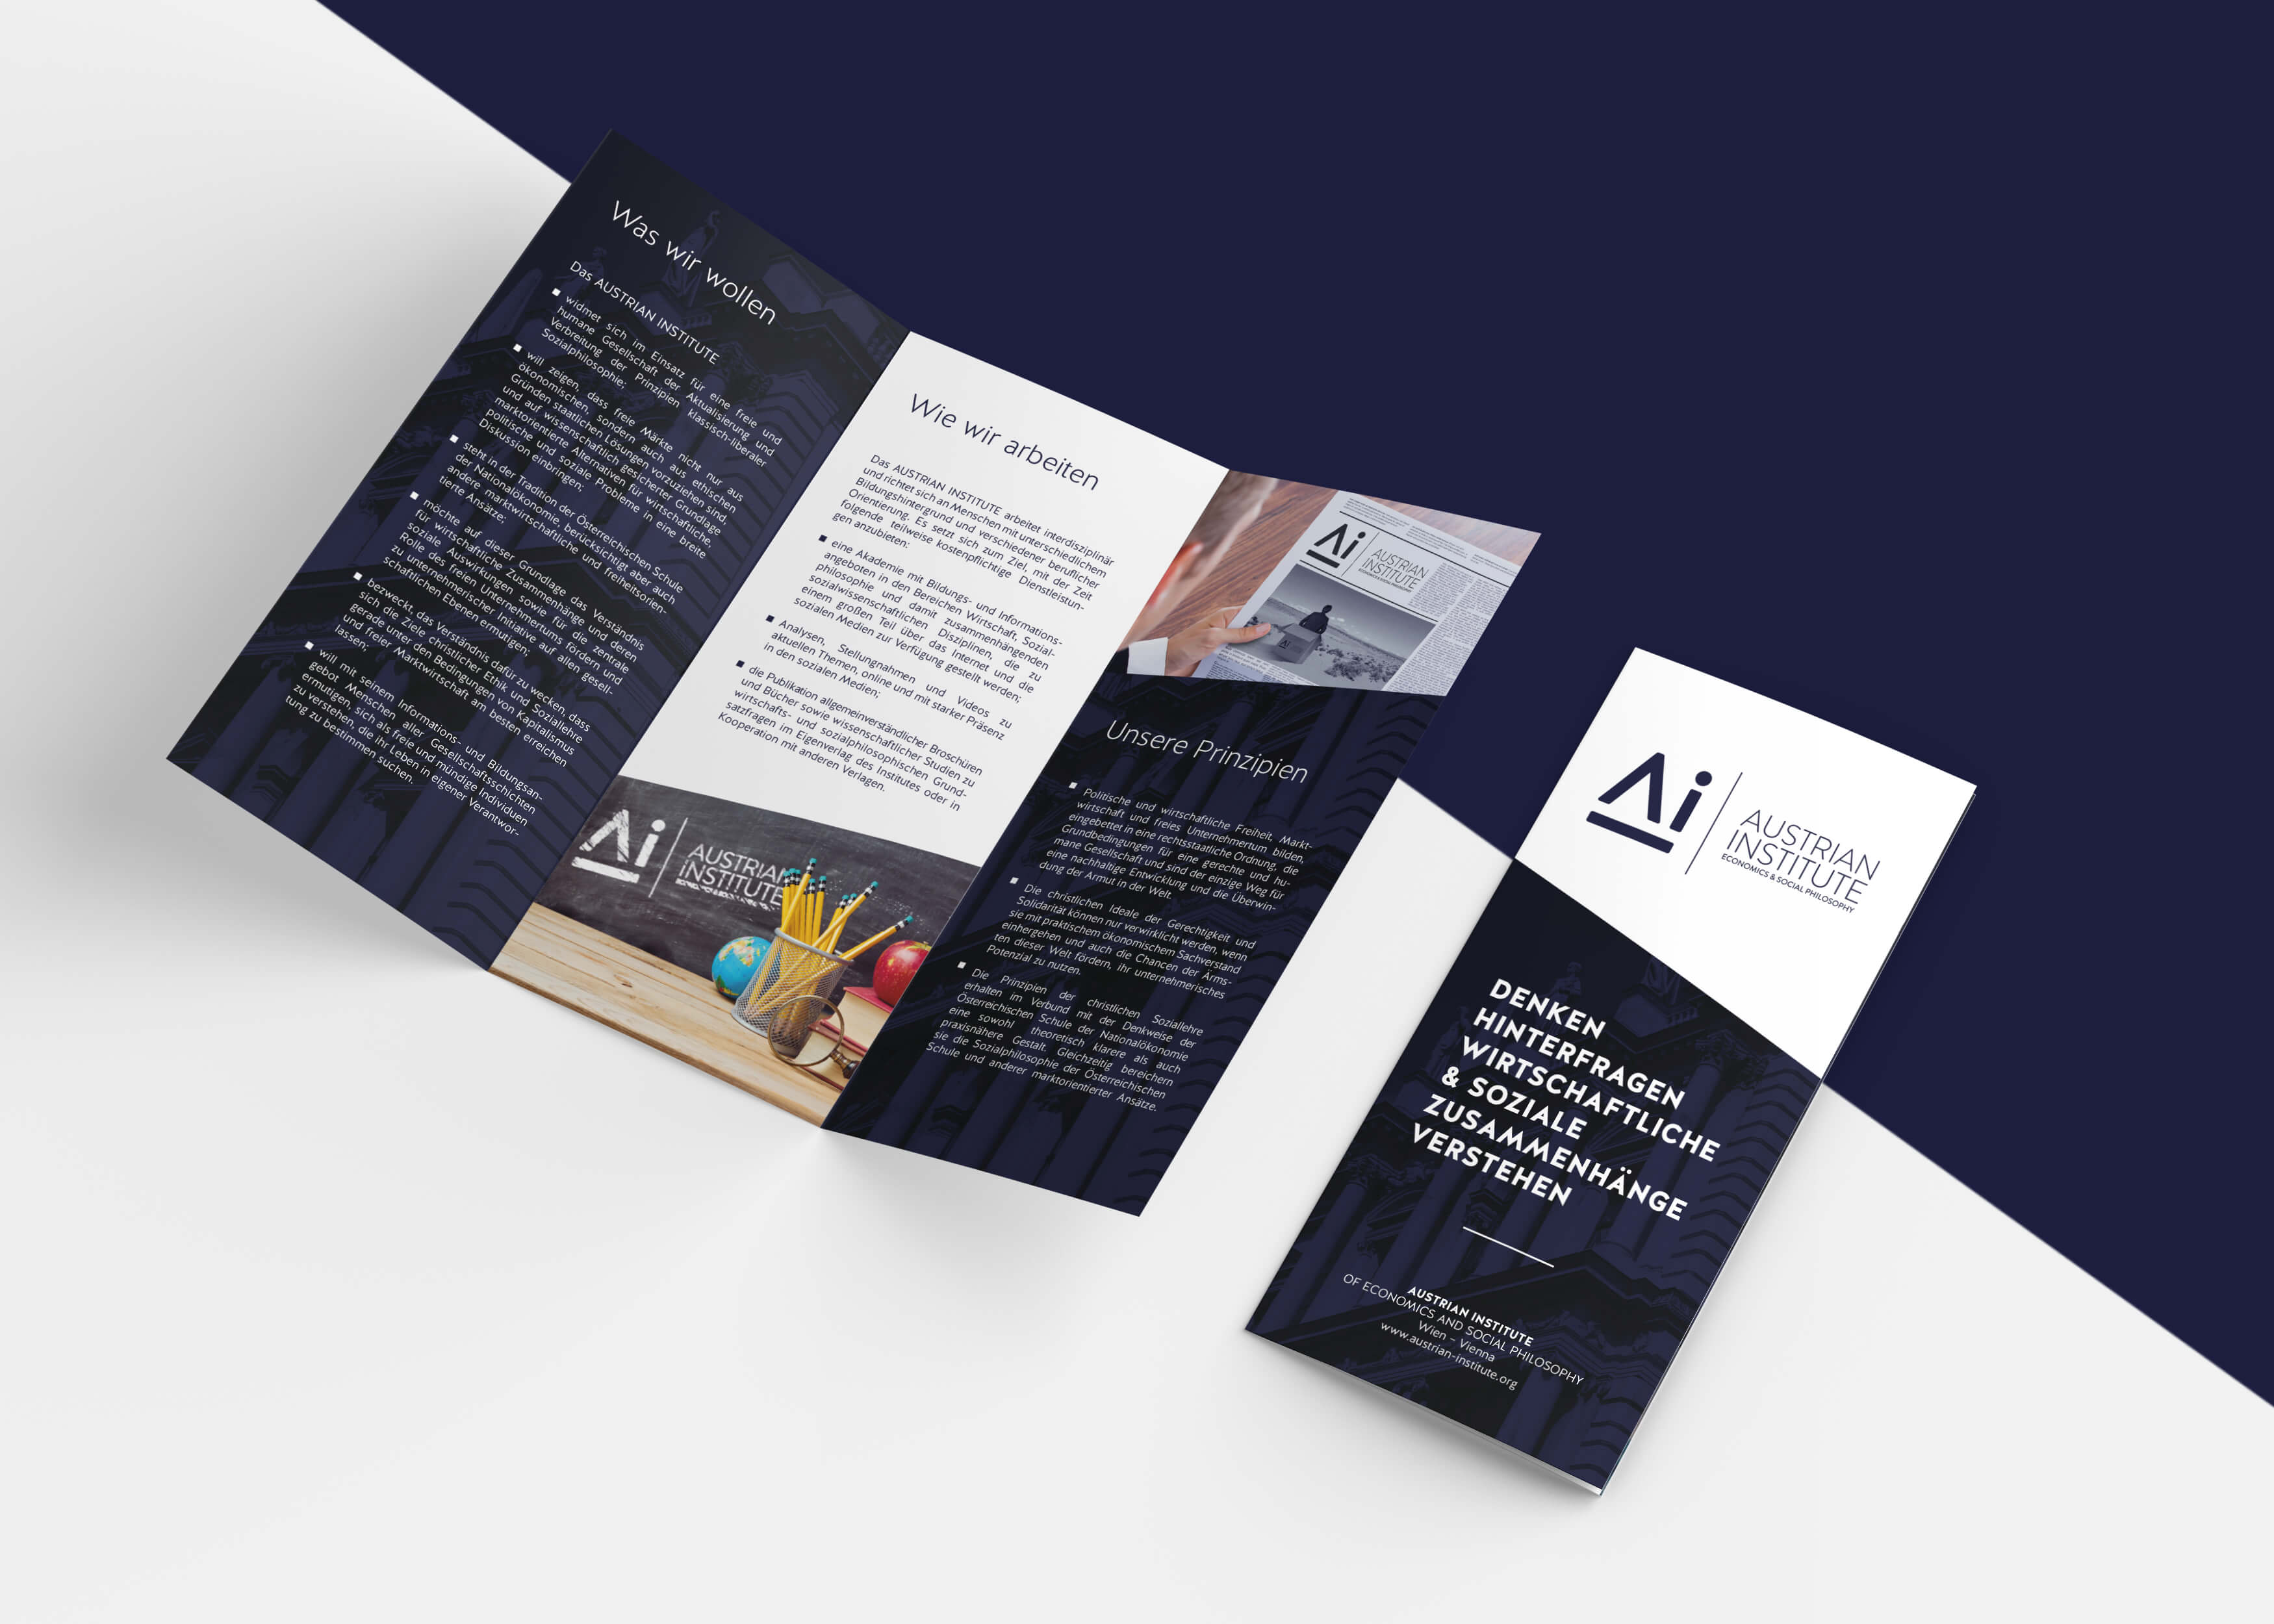 Austrian Institute Trifold Brochure Grafikdesign